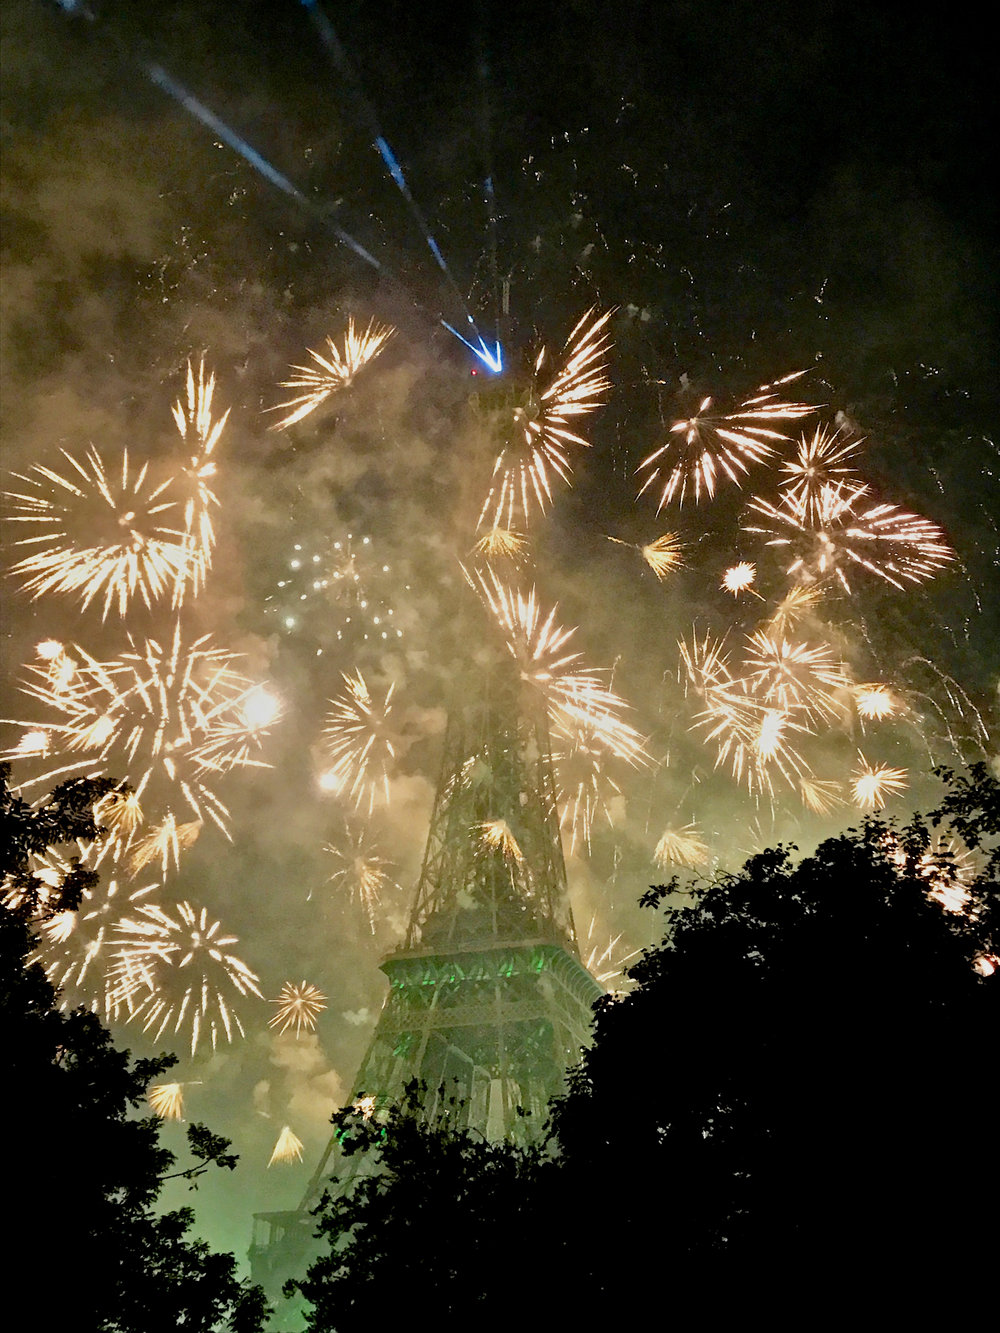 Fireworks finale at the Eiffel Tower (image courtesy of Lisa Michaux)